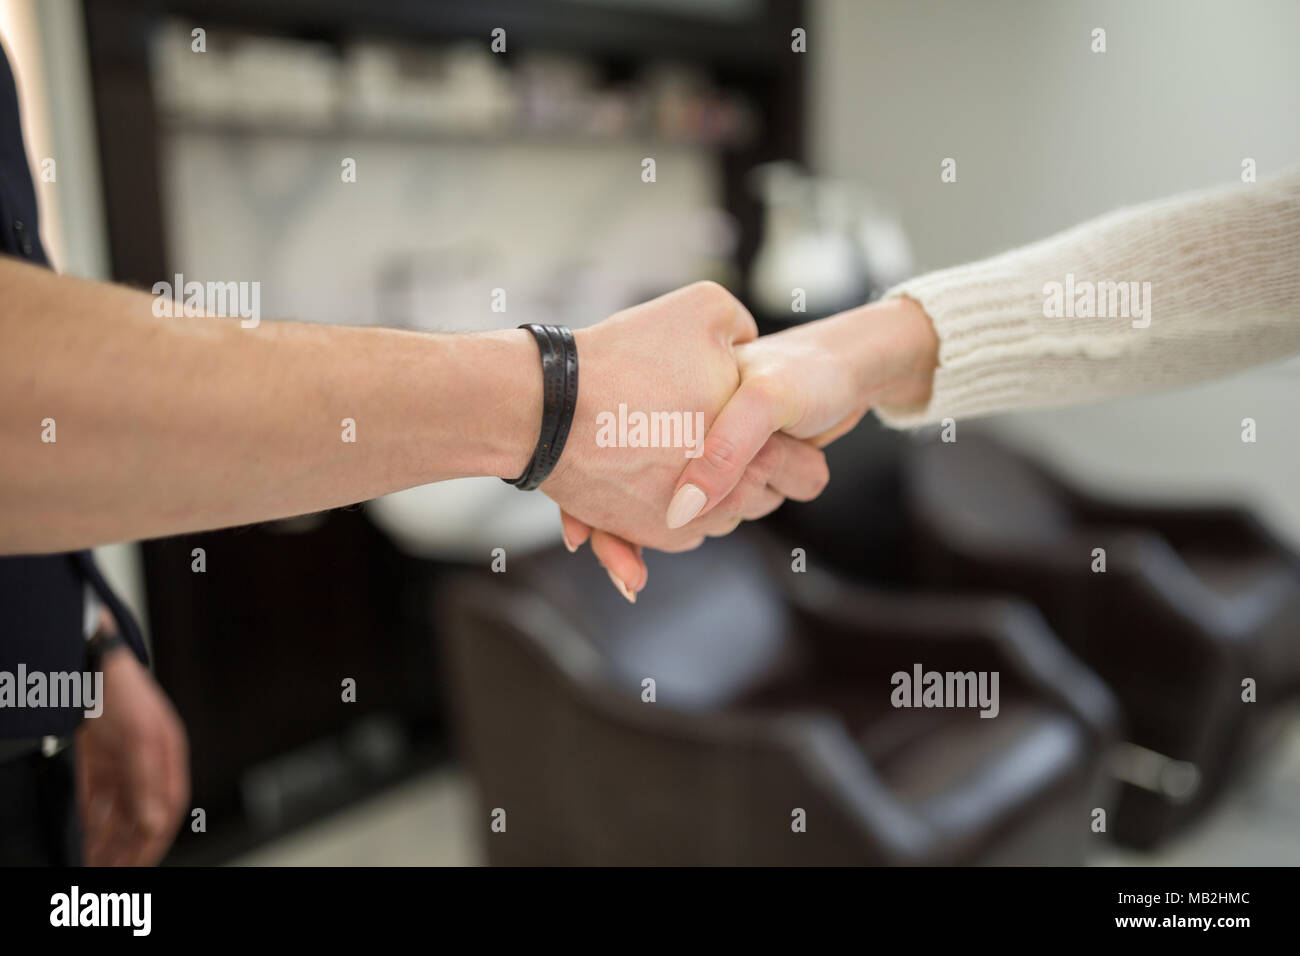 Cropped portrait of people shaking hands at hairdresser salon - Stock Image